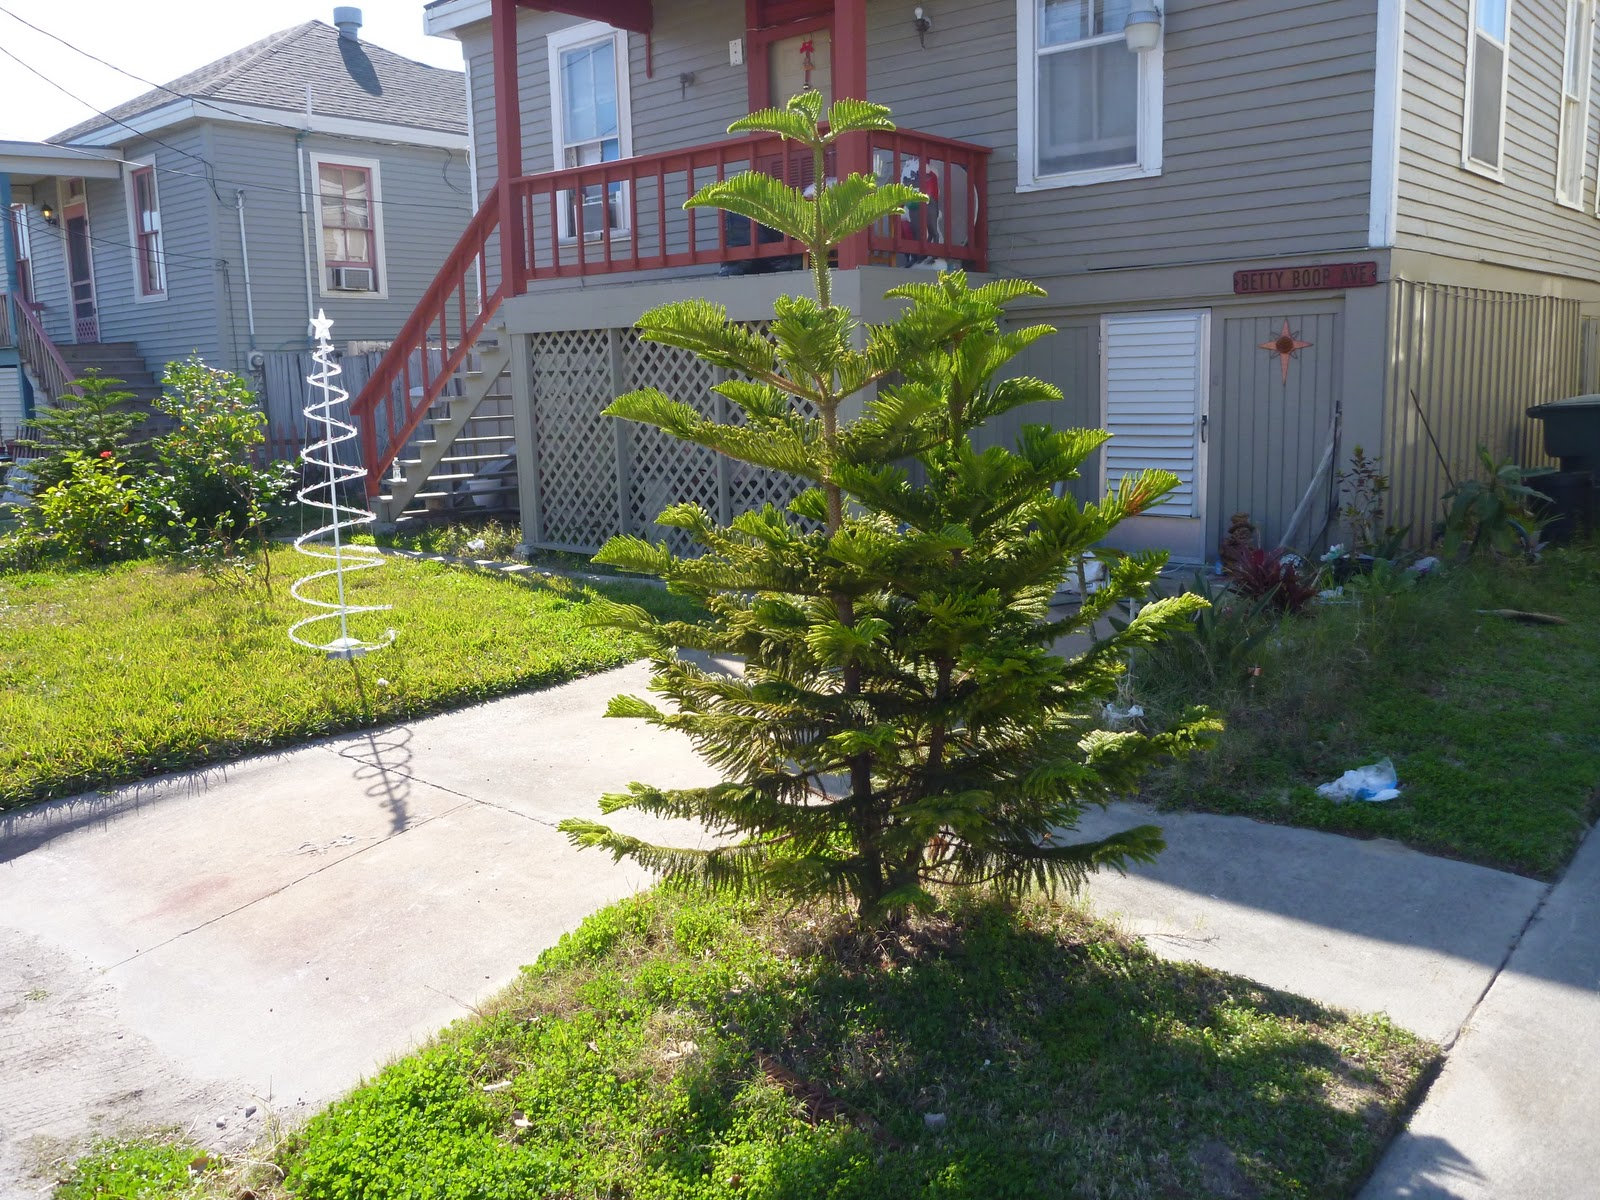 Galveston Gardening: Norfolk Island Pine - Know the Risks Before You ...